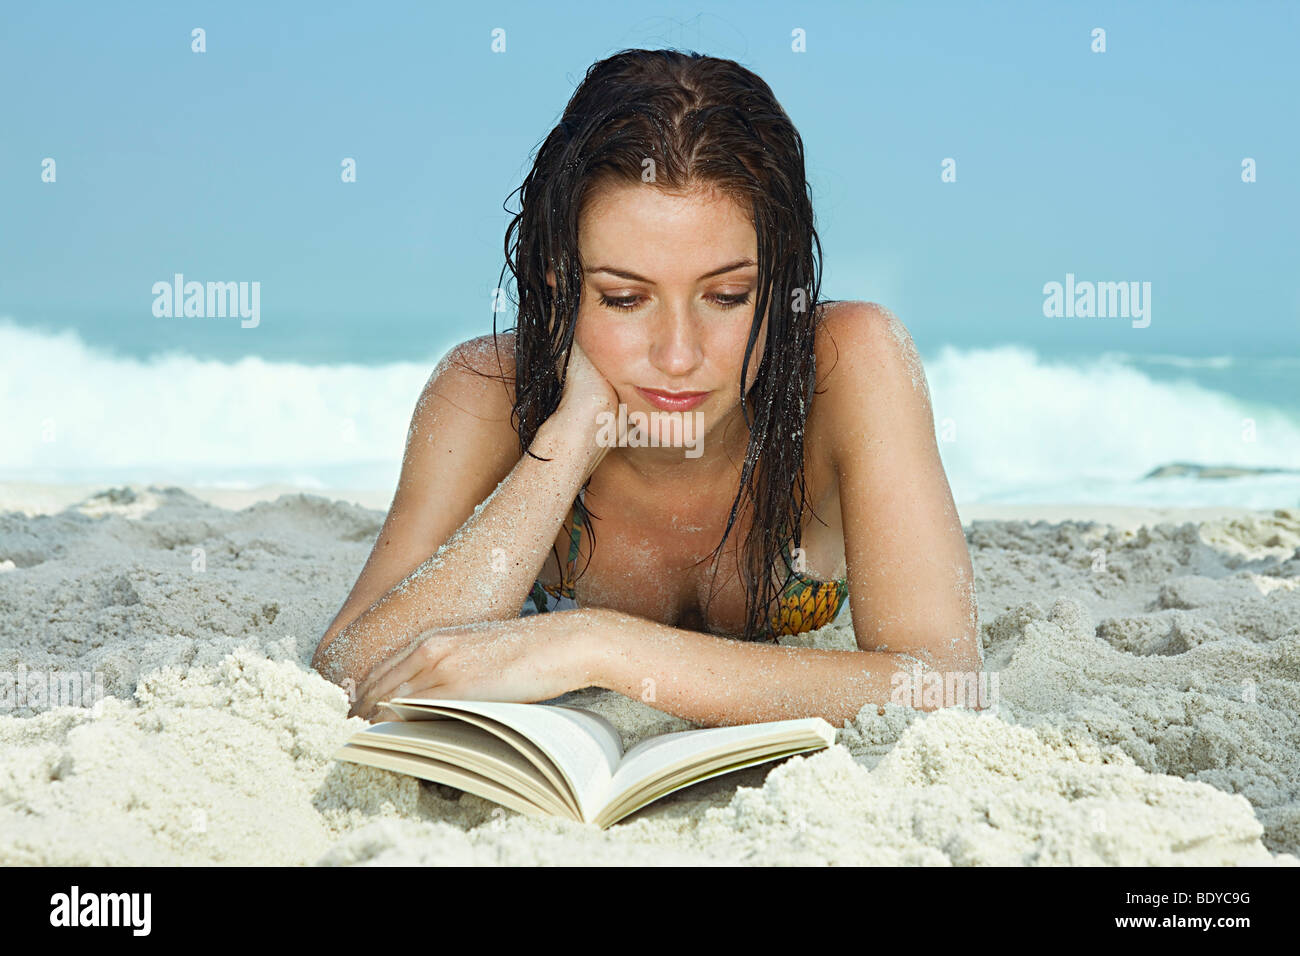 Young Women on Beach reading a book - Stock Image